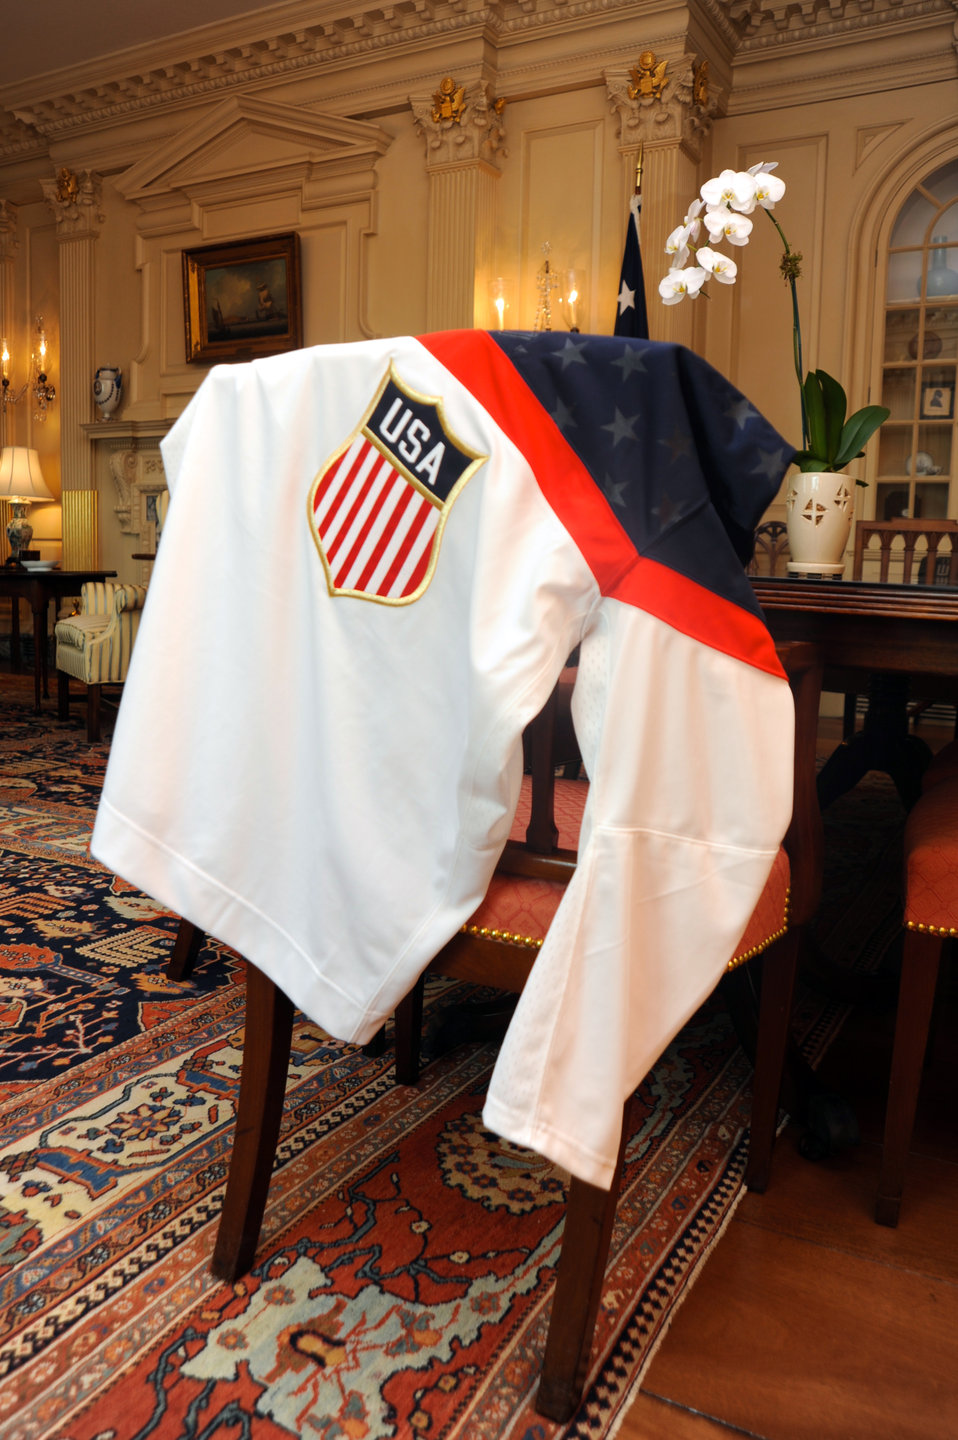 Secretary Kerry's Team USA Hockey Jersey on Proud Display